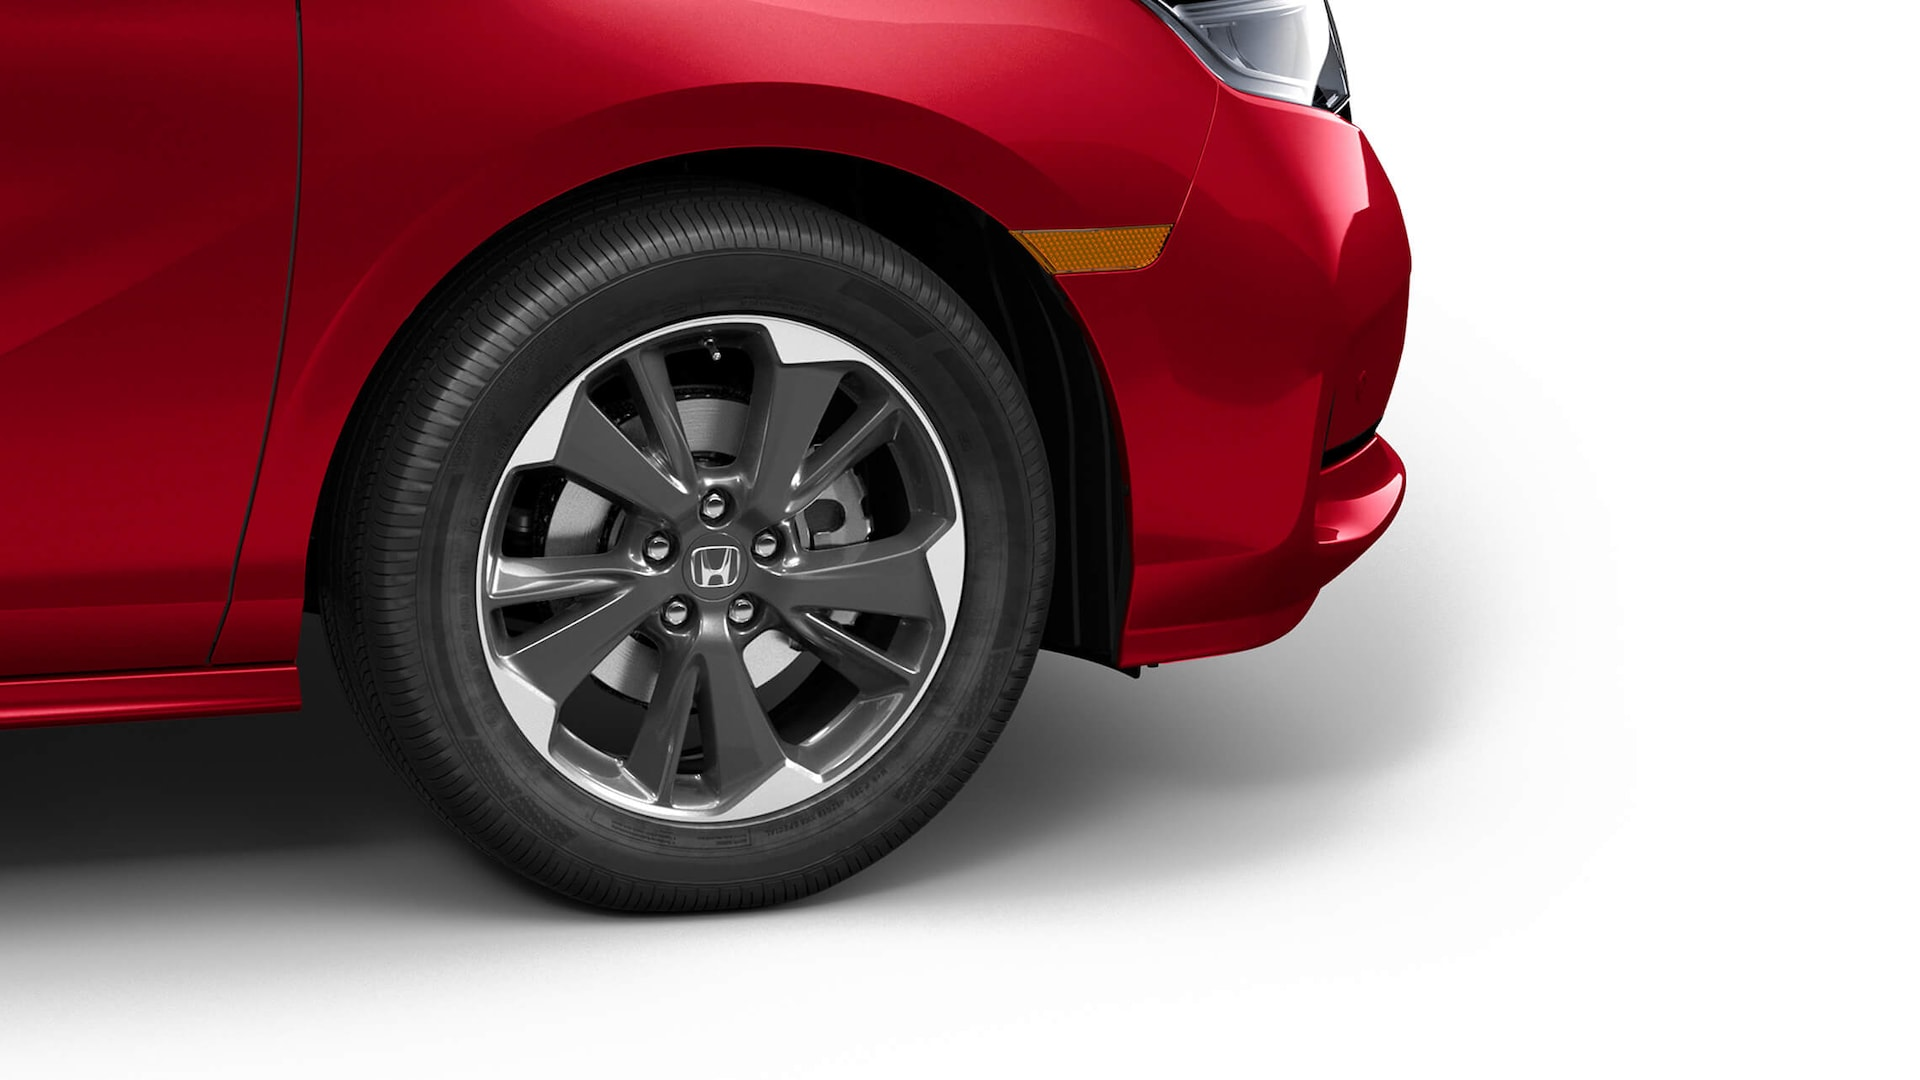 19-inch alloy wheel detail on the 2022 Honda Odyssey Elite in Radiant Red Metallic II.